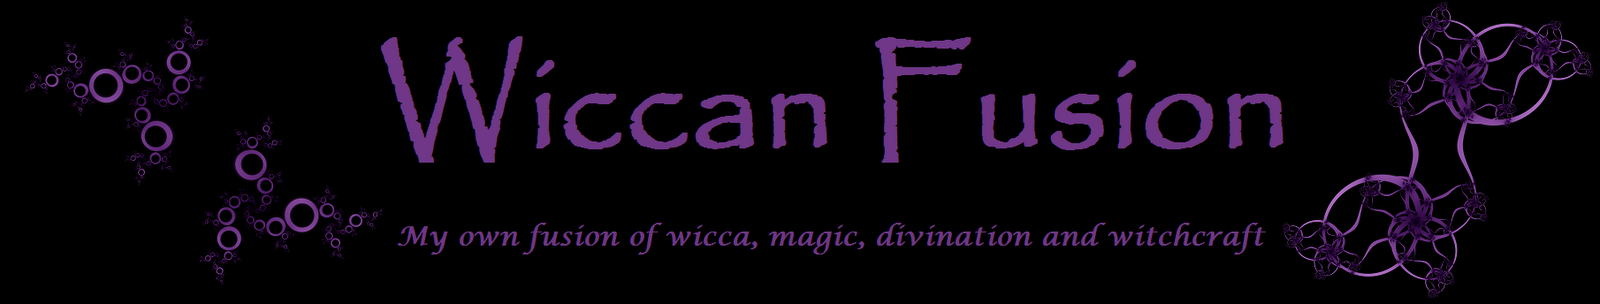 Wiccan Fusion